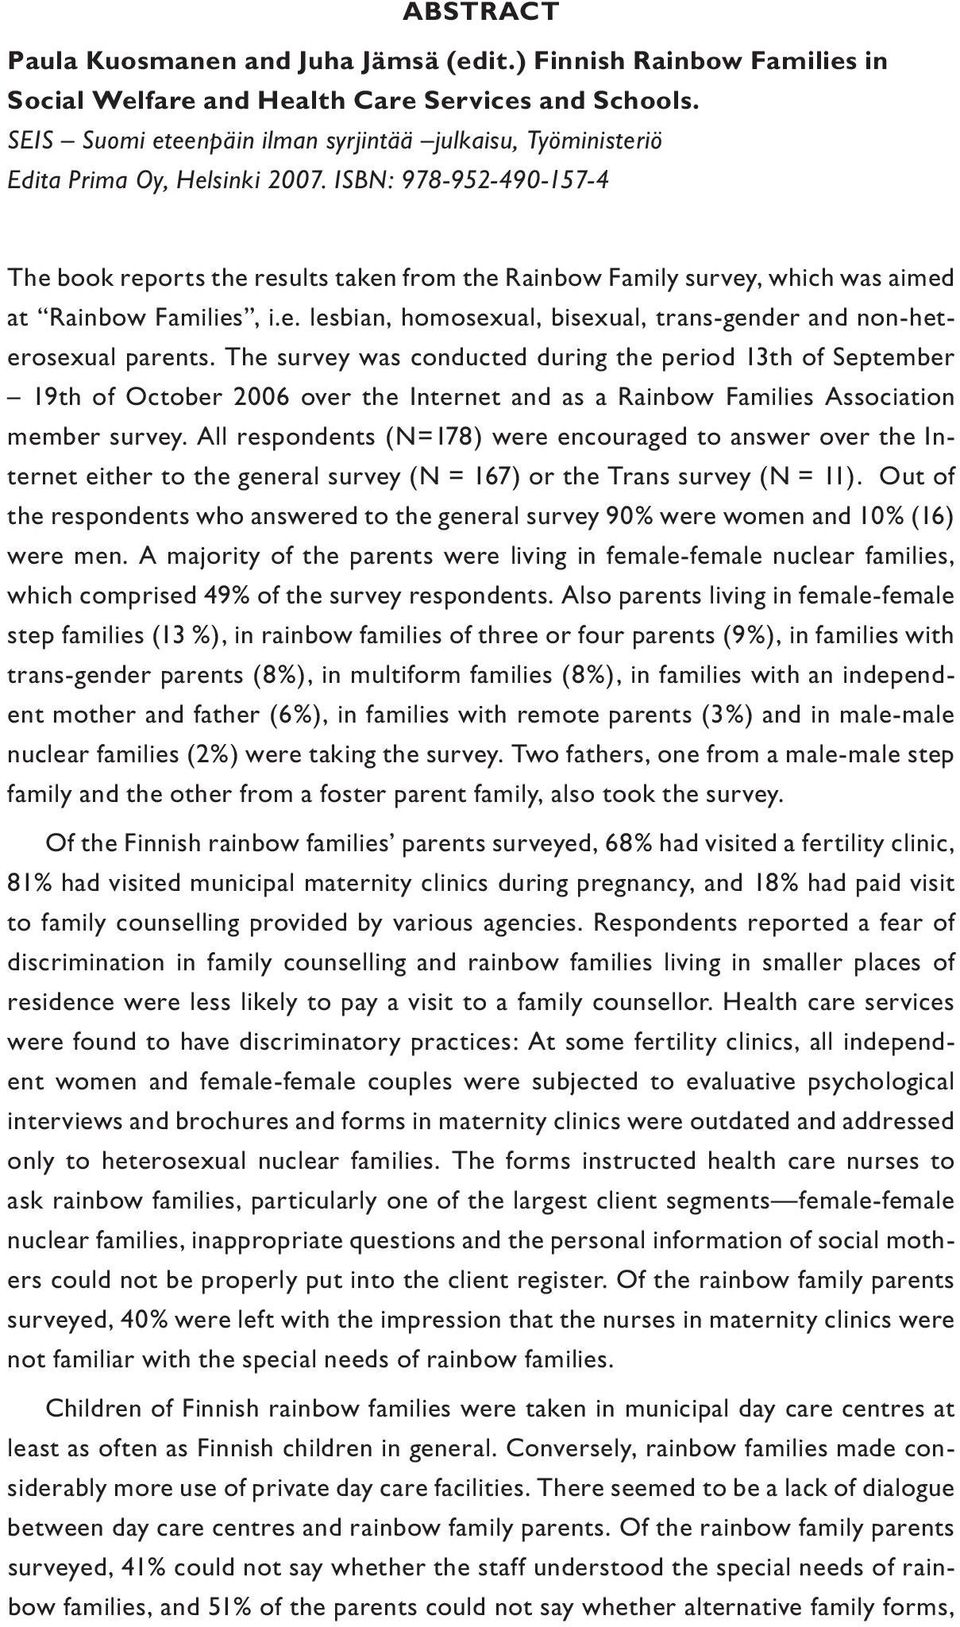 ISBN: 978-952-490-157-4 The book reports the results taken from the Rainbow Family survey, which was aimed at Rainbow Families, i.e. lesbian, homosexual, bisexual, trans-gender and non-heterosexual parents.